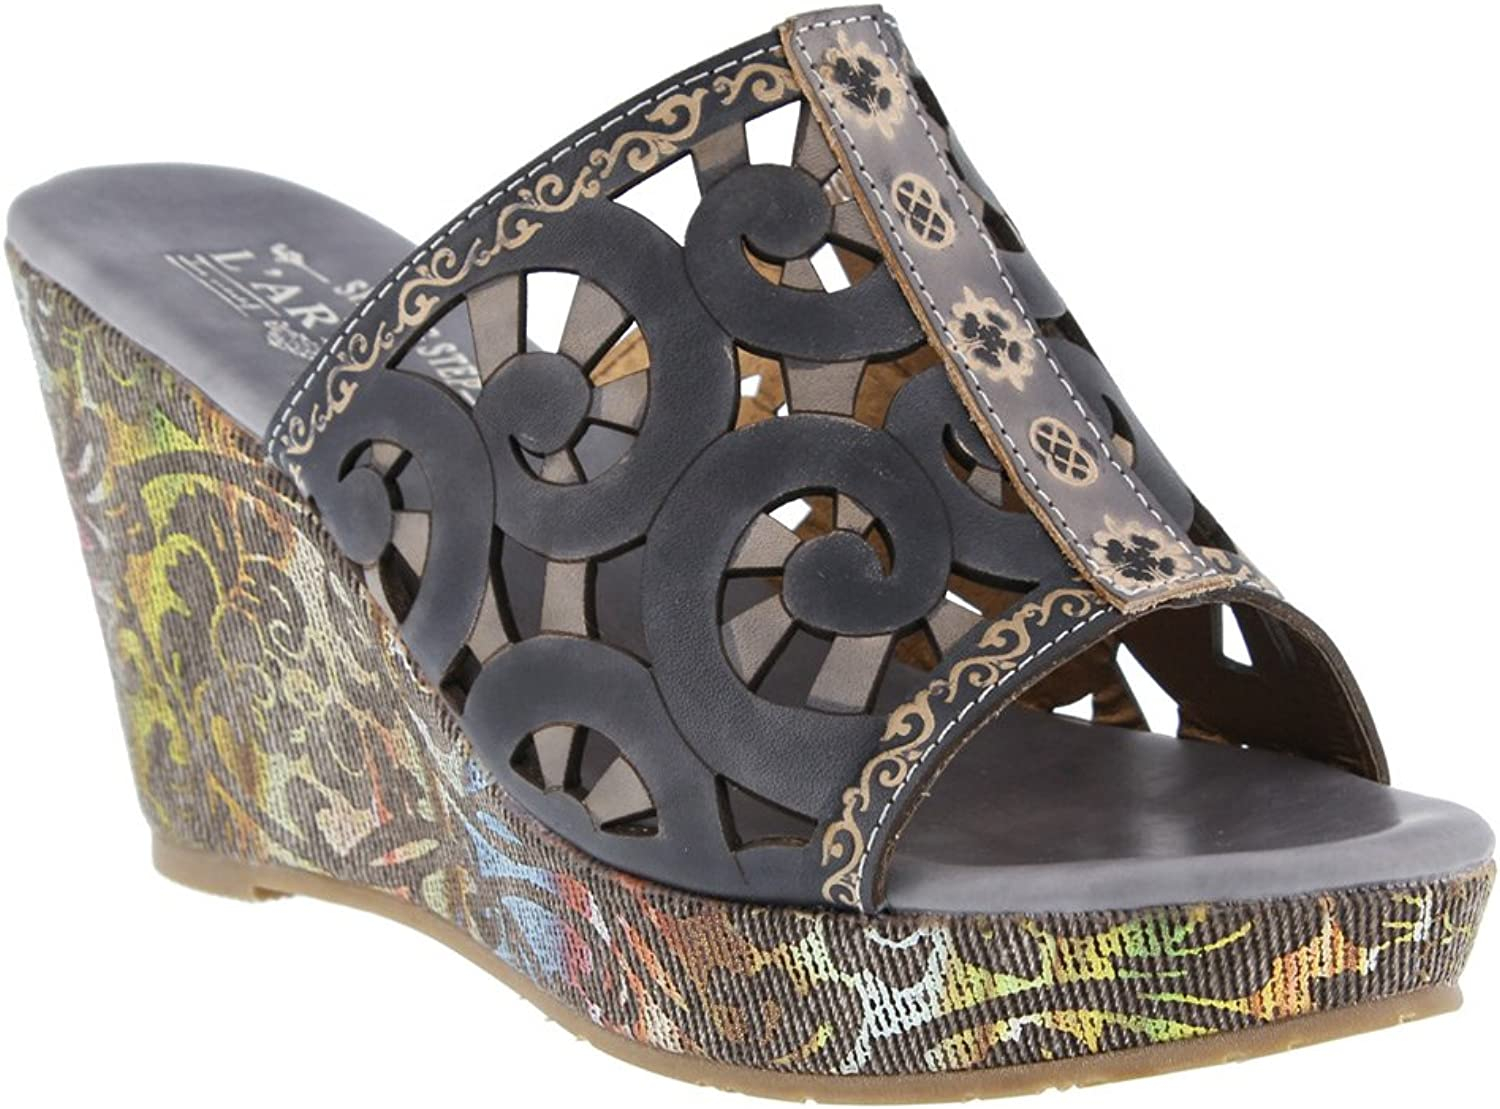 Spring Step Women's Zoe Black Multi sandals 38 M